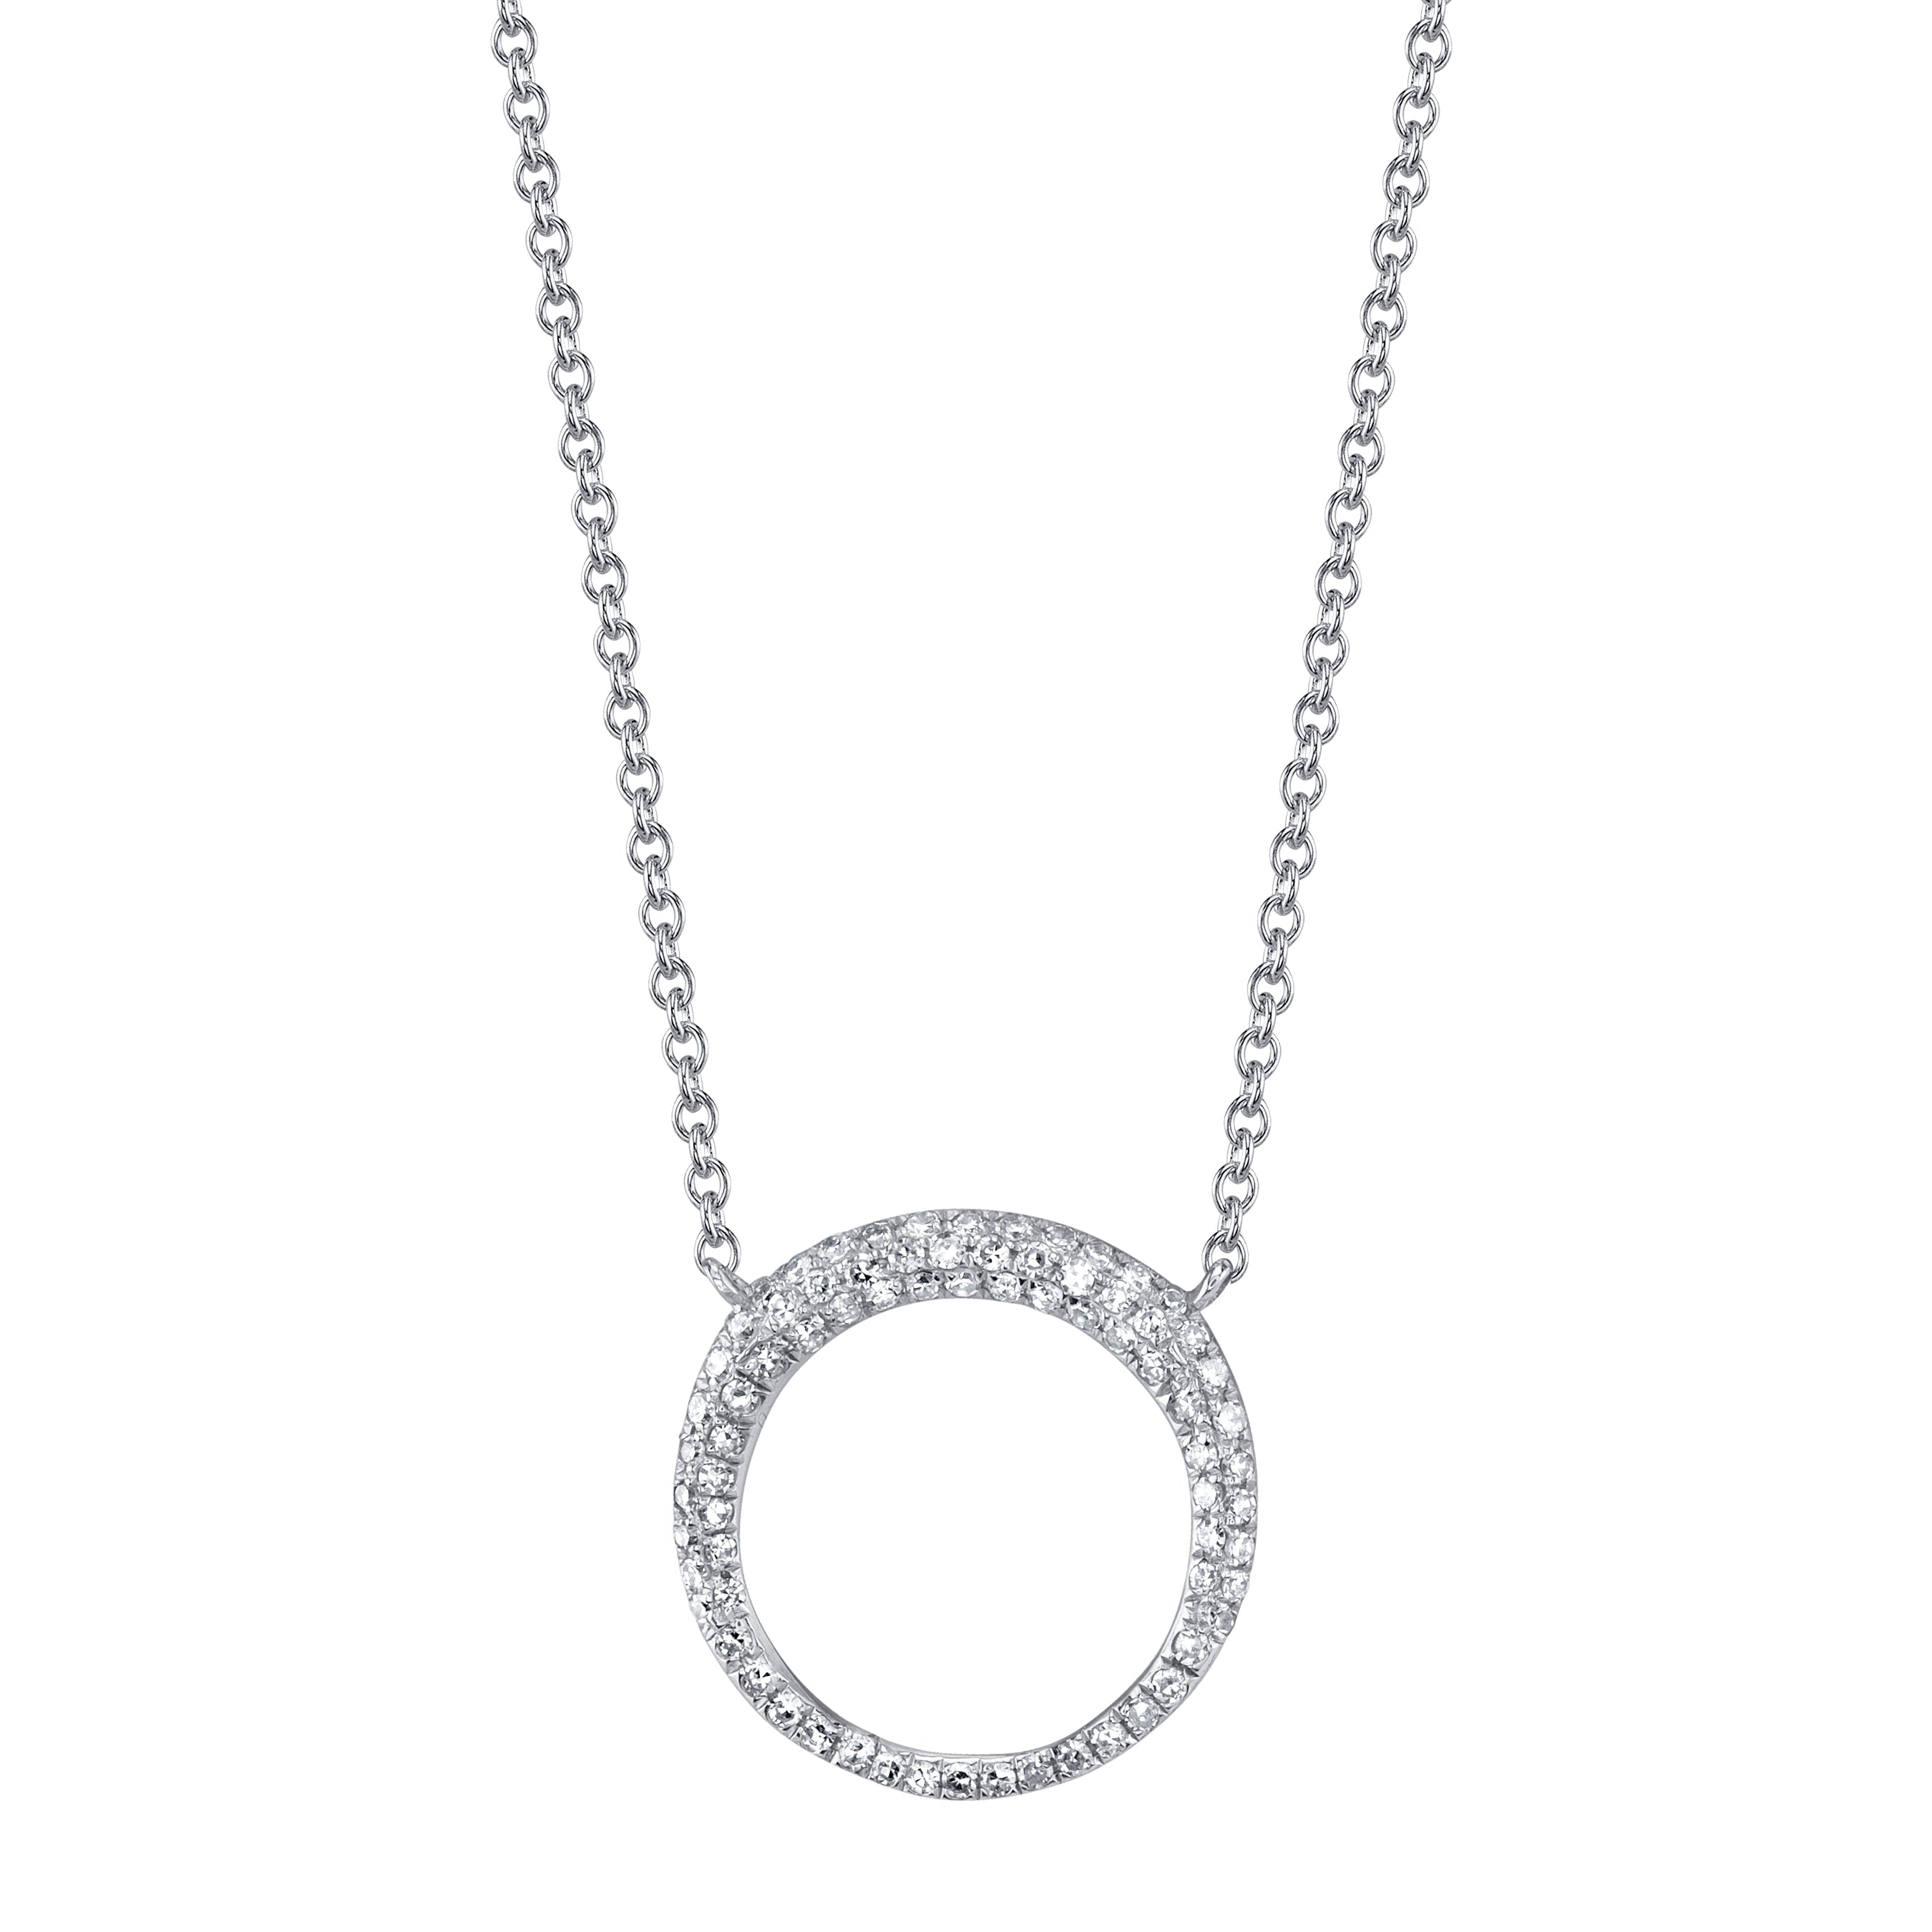 Small Balloon Necklace With White Pavé Diamonds - Gabriela Artigas